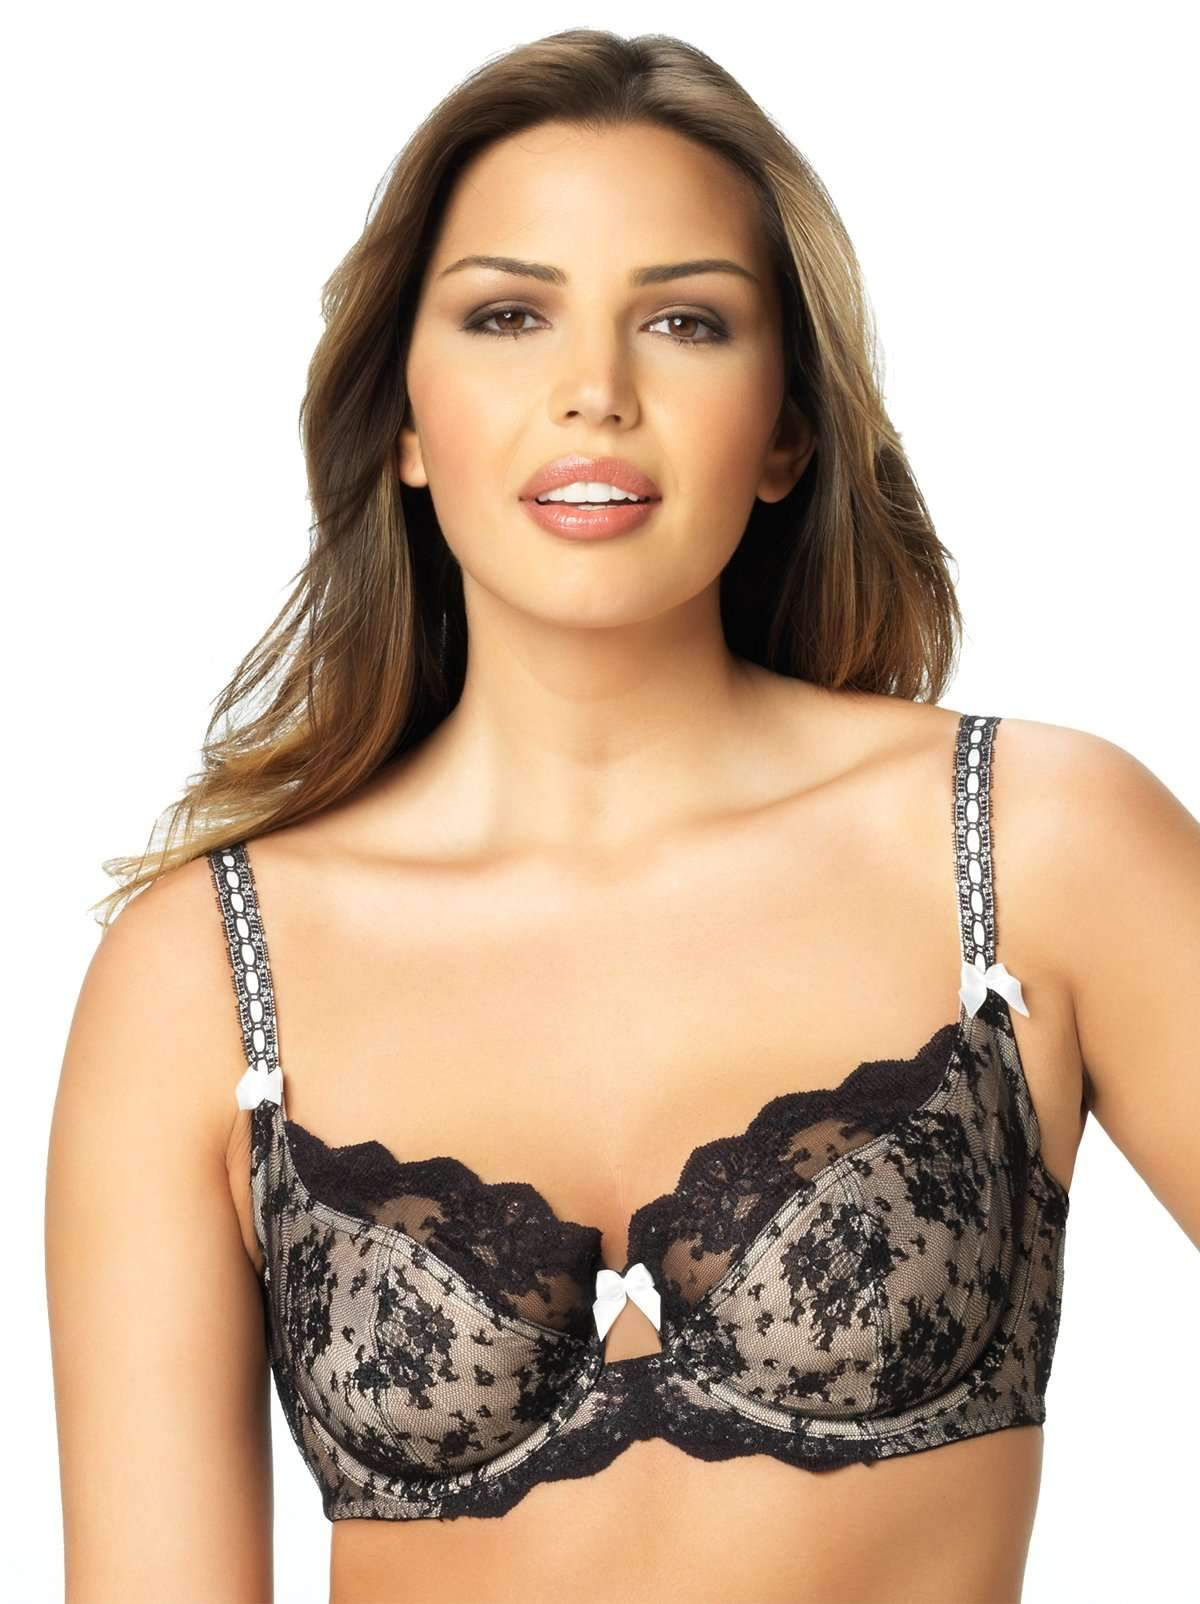 Paramour by Felina | Captivate Unlined Bra | Floral Lace Detail | 3 Section Cup (Black, 36G)